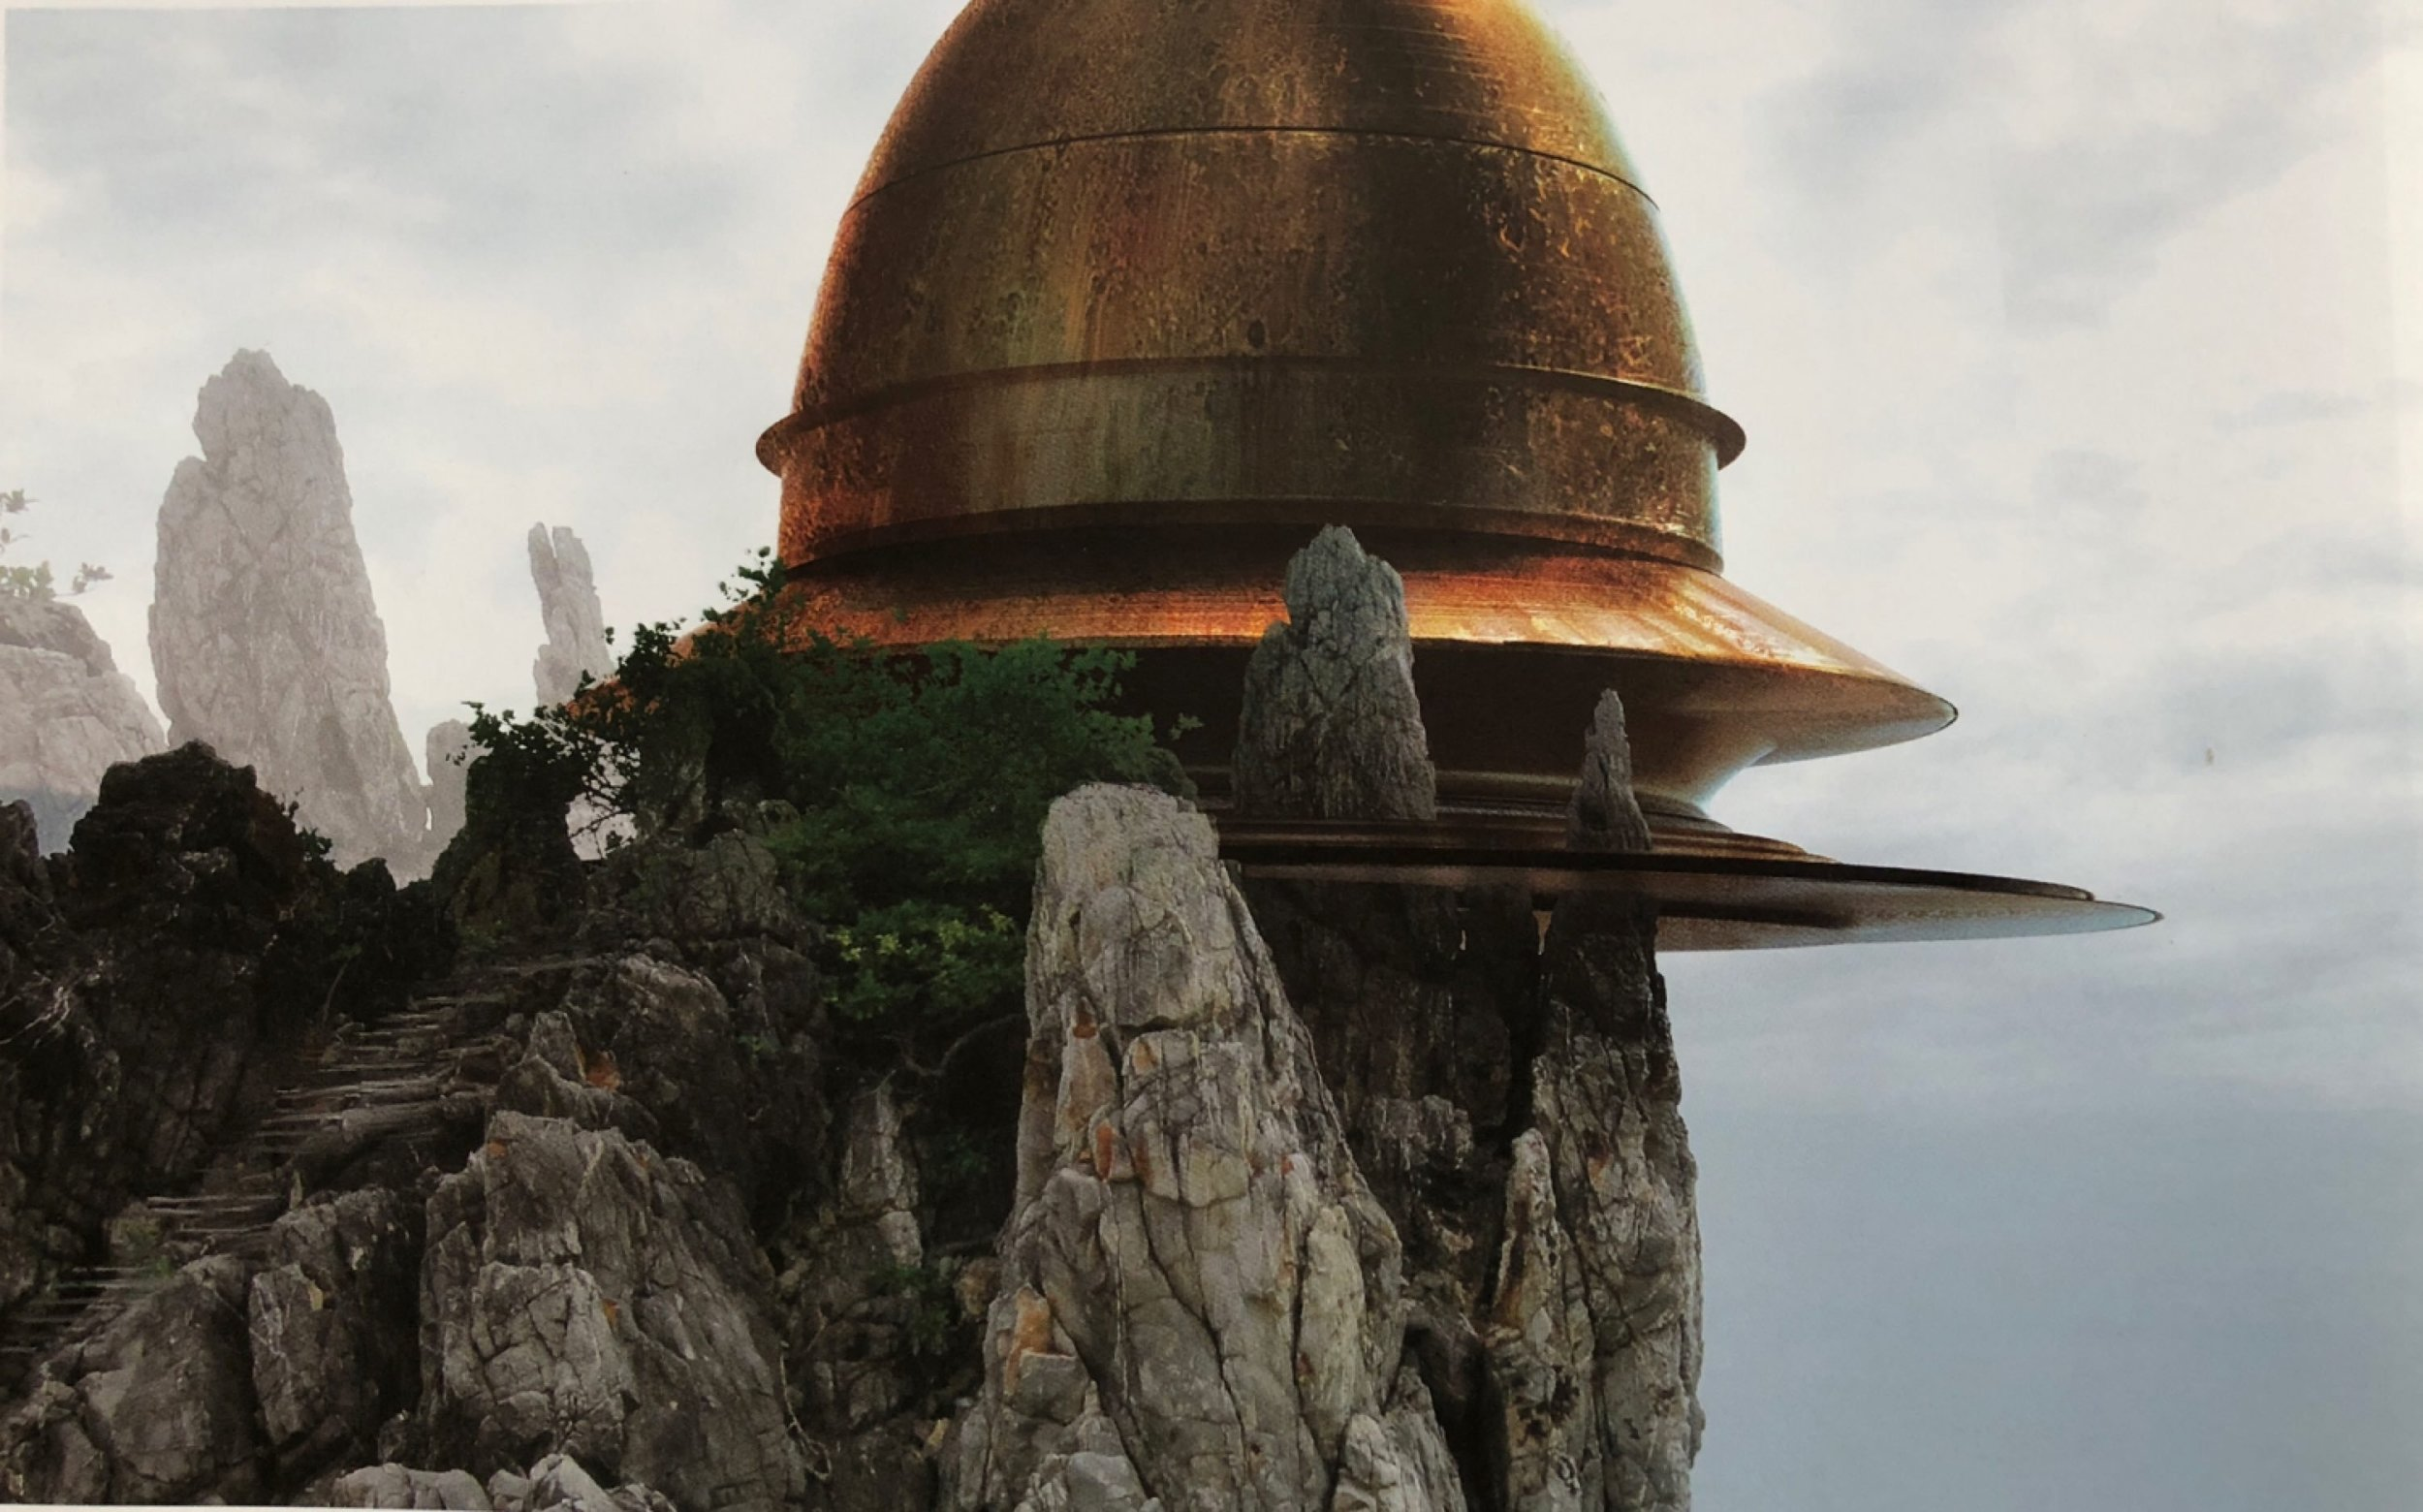 concept-art-revealed-for-george-lucas-vision-of-the-jedi-temple-for-star-wars-episode-vii1